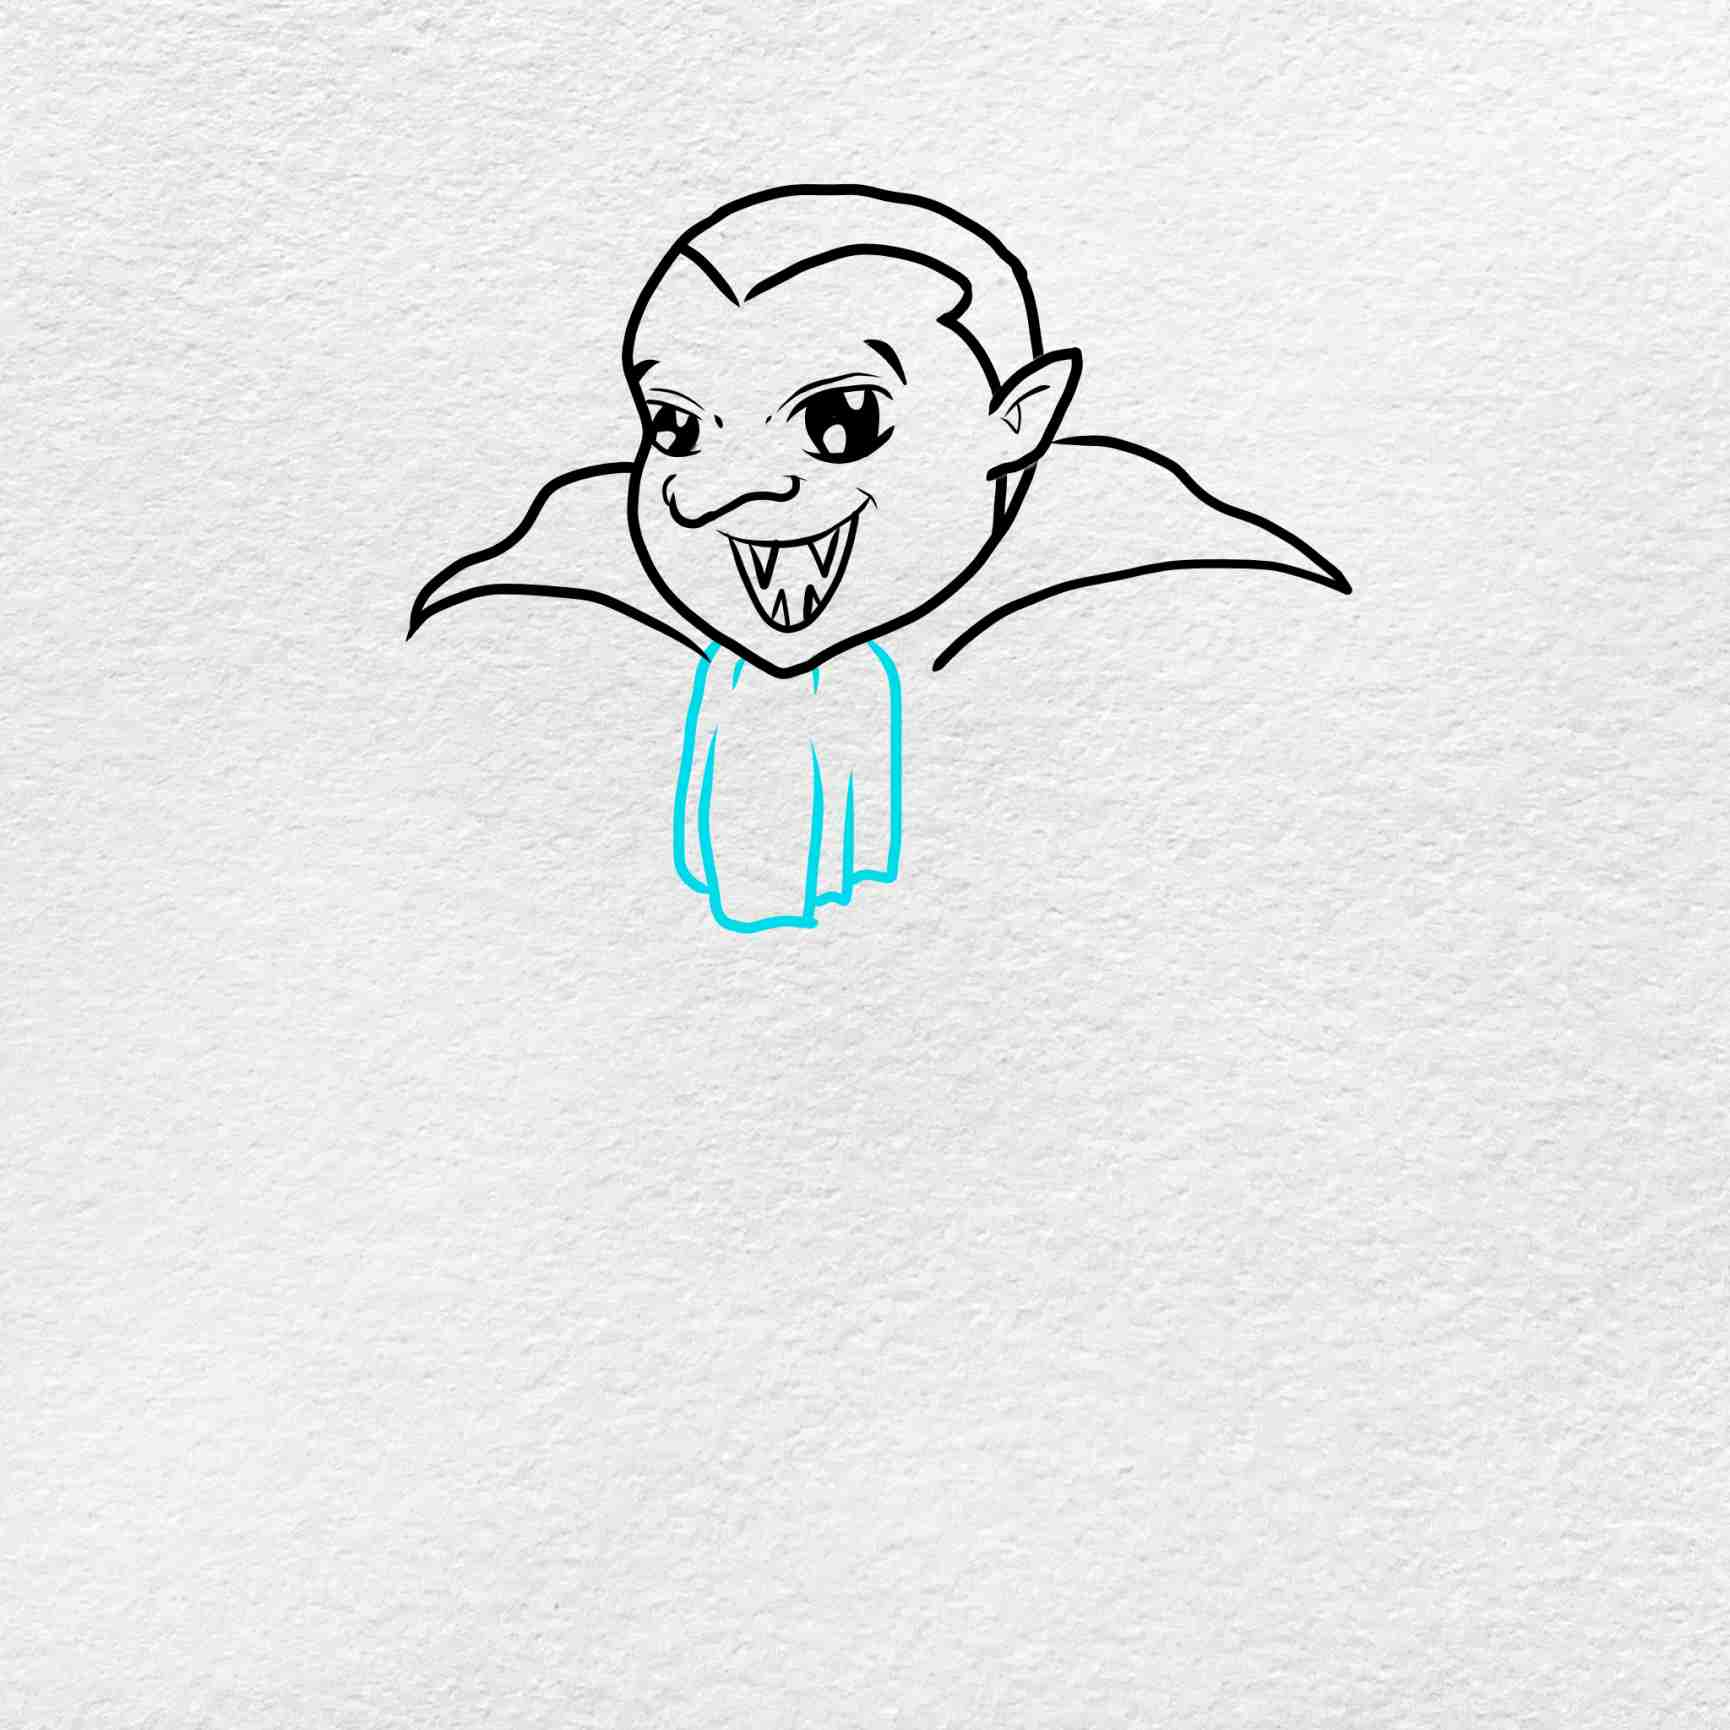 Vampire Drawing For Kids: Step 5